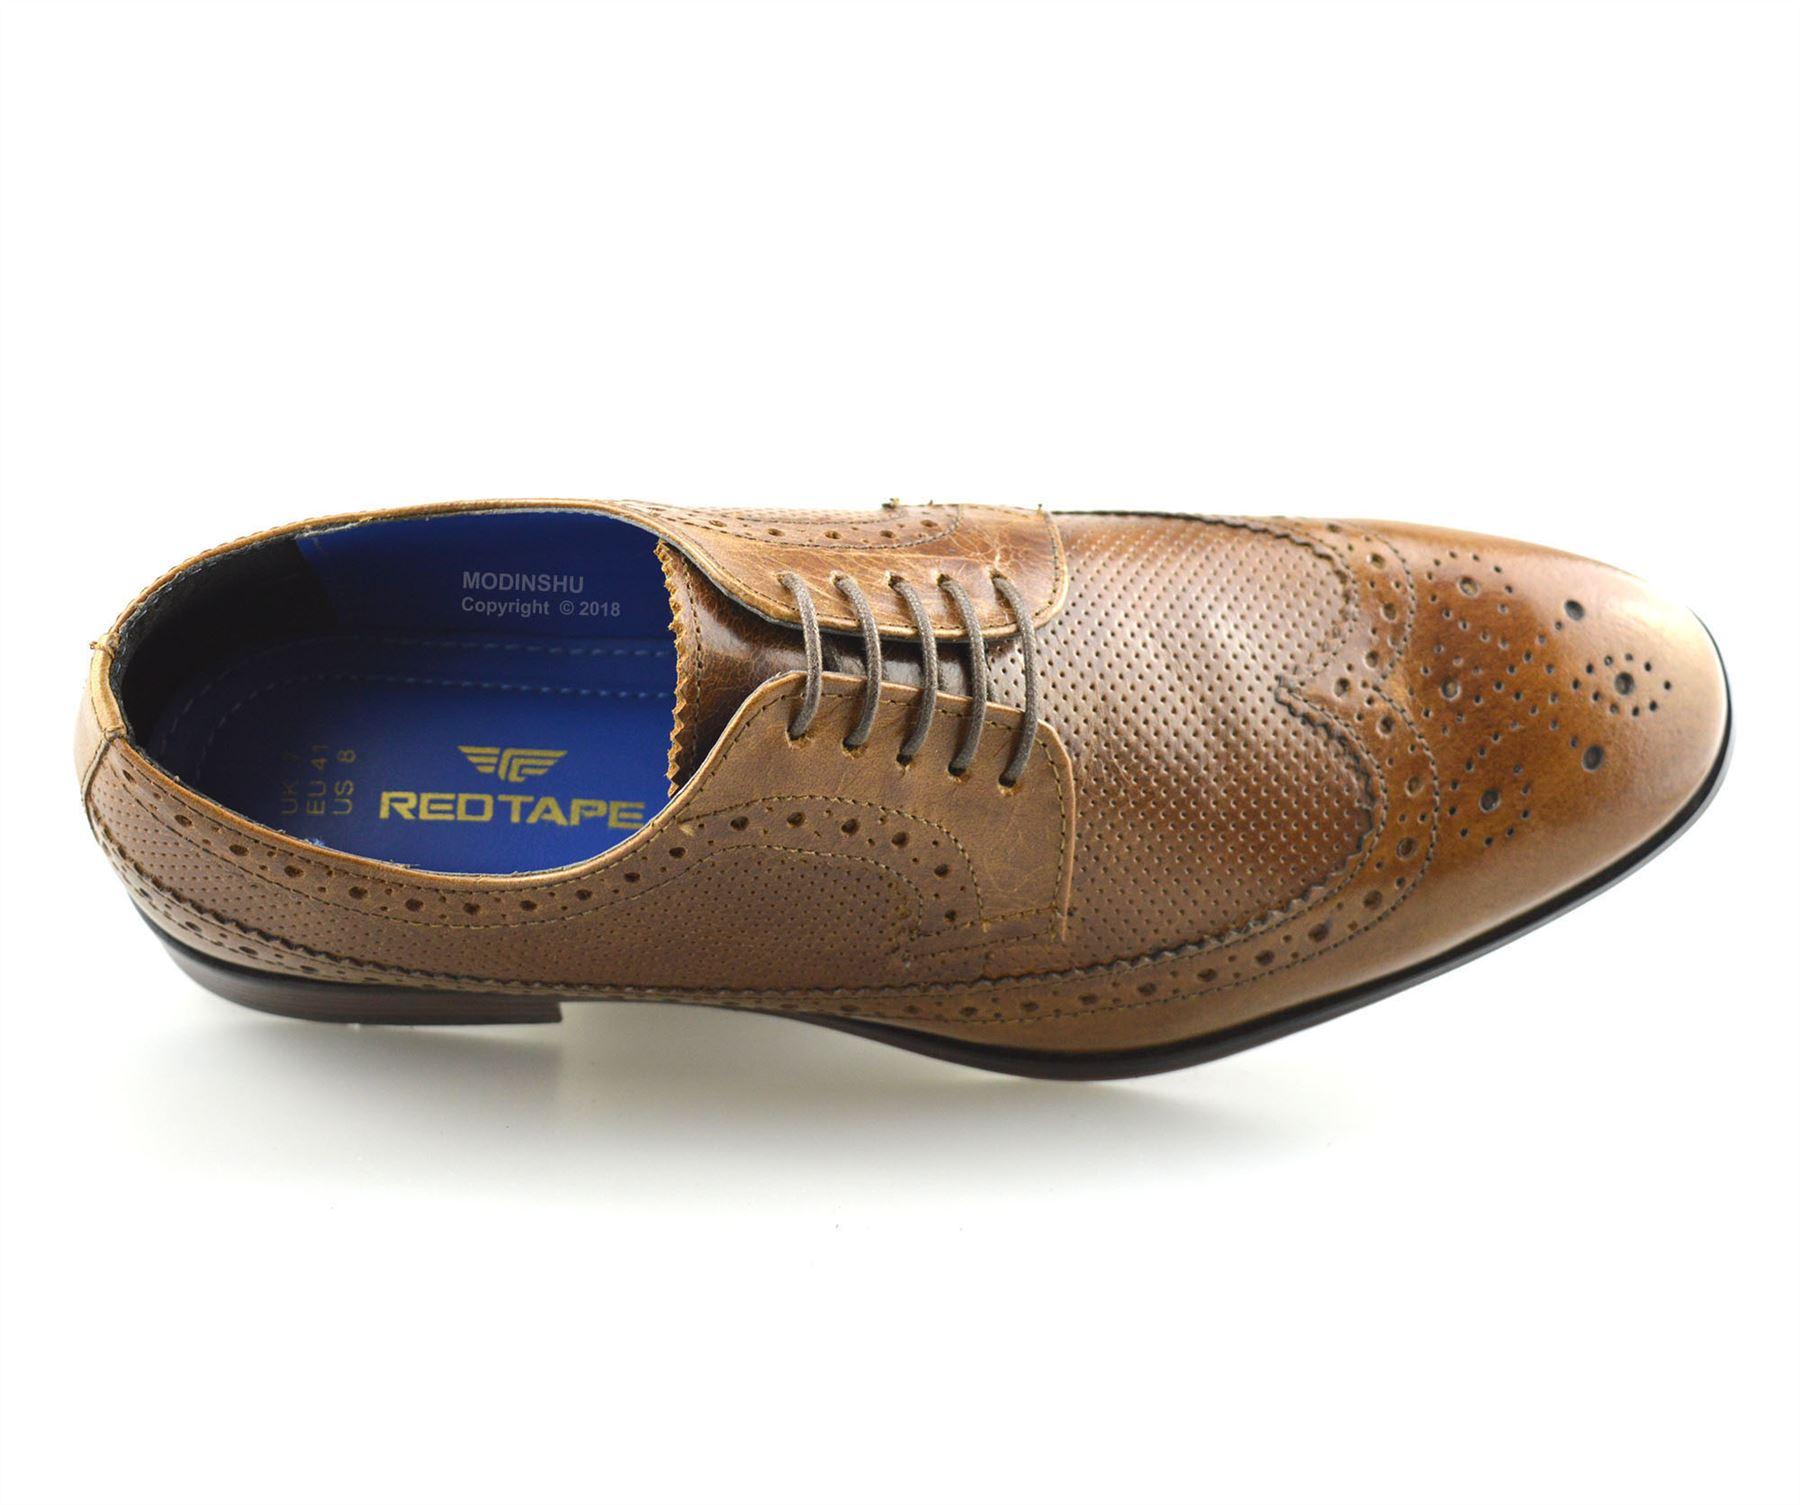 Mens-Leather-Brogues-Smart-Casual-Formal-Office-Lace-Up-Oxford-Brogue-Shoes-Size thumbnail 15